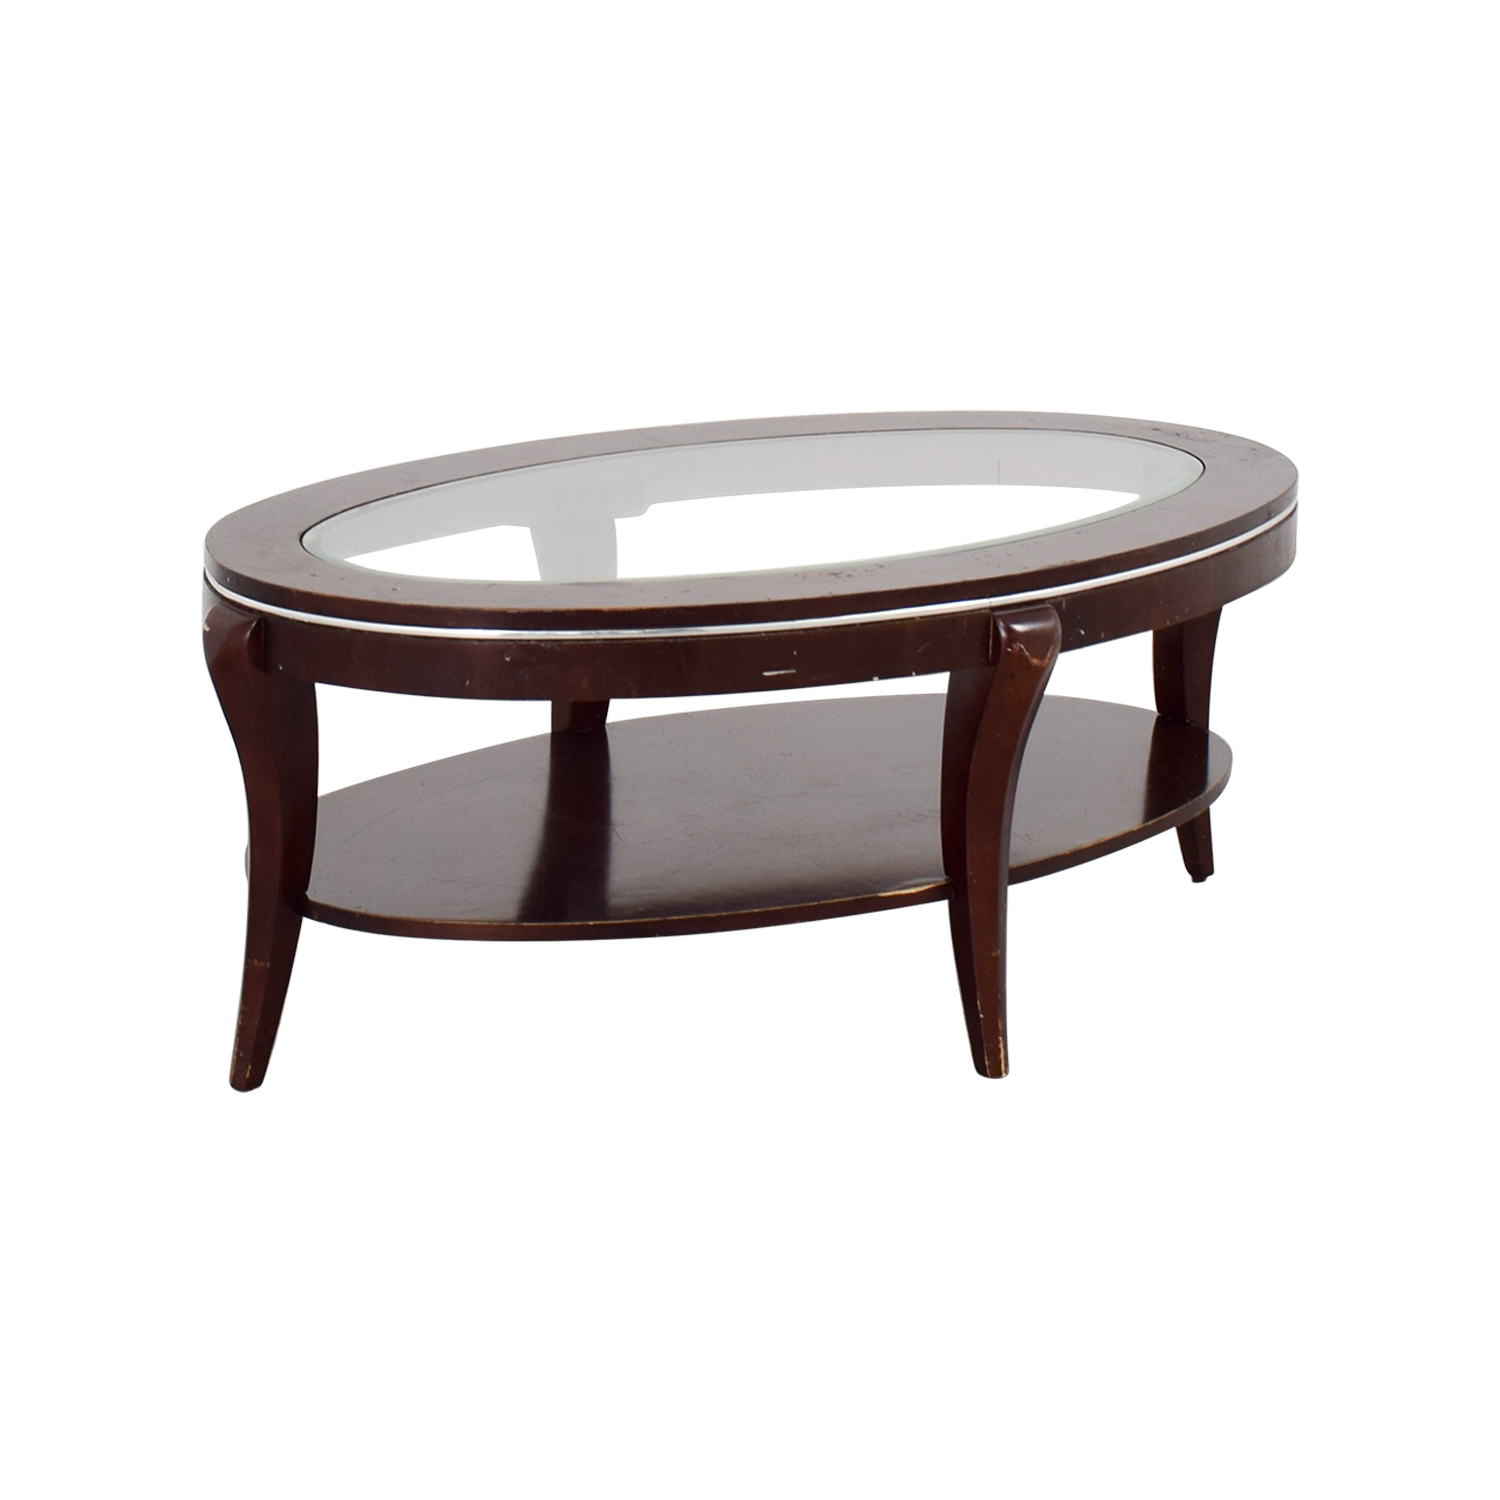 Smartly Wood Glass Oval Coffee Table Second Hand Off Wood Glass Oval Coffee Table Tables Oval Coffee Table Glass Oval Coffee Table Marble houzz-02 Oval Coffee Table